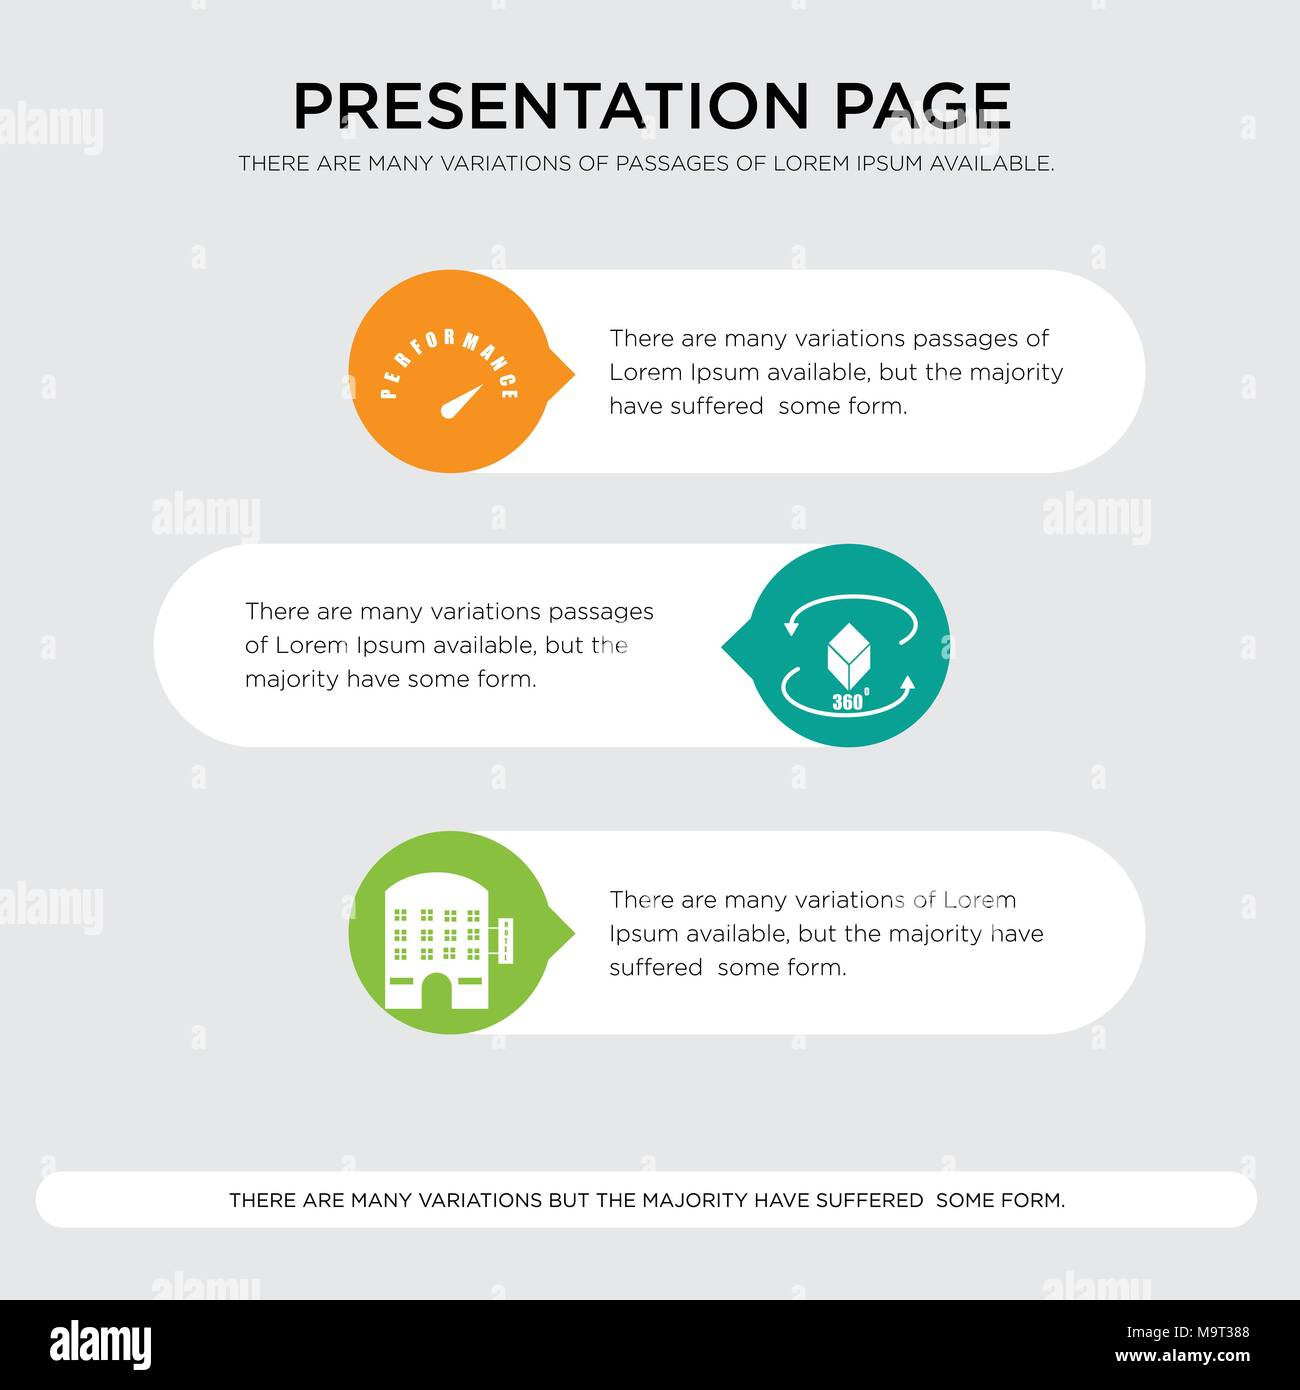 lodging, 360 image, high performance presentation design template in orange, green, yellow colors with horizontal and rounded shapes - Stock Vector